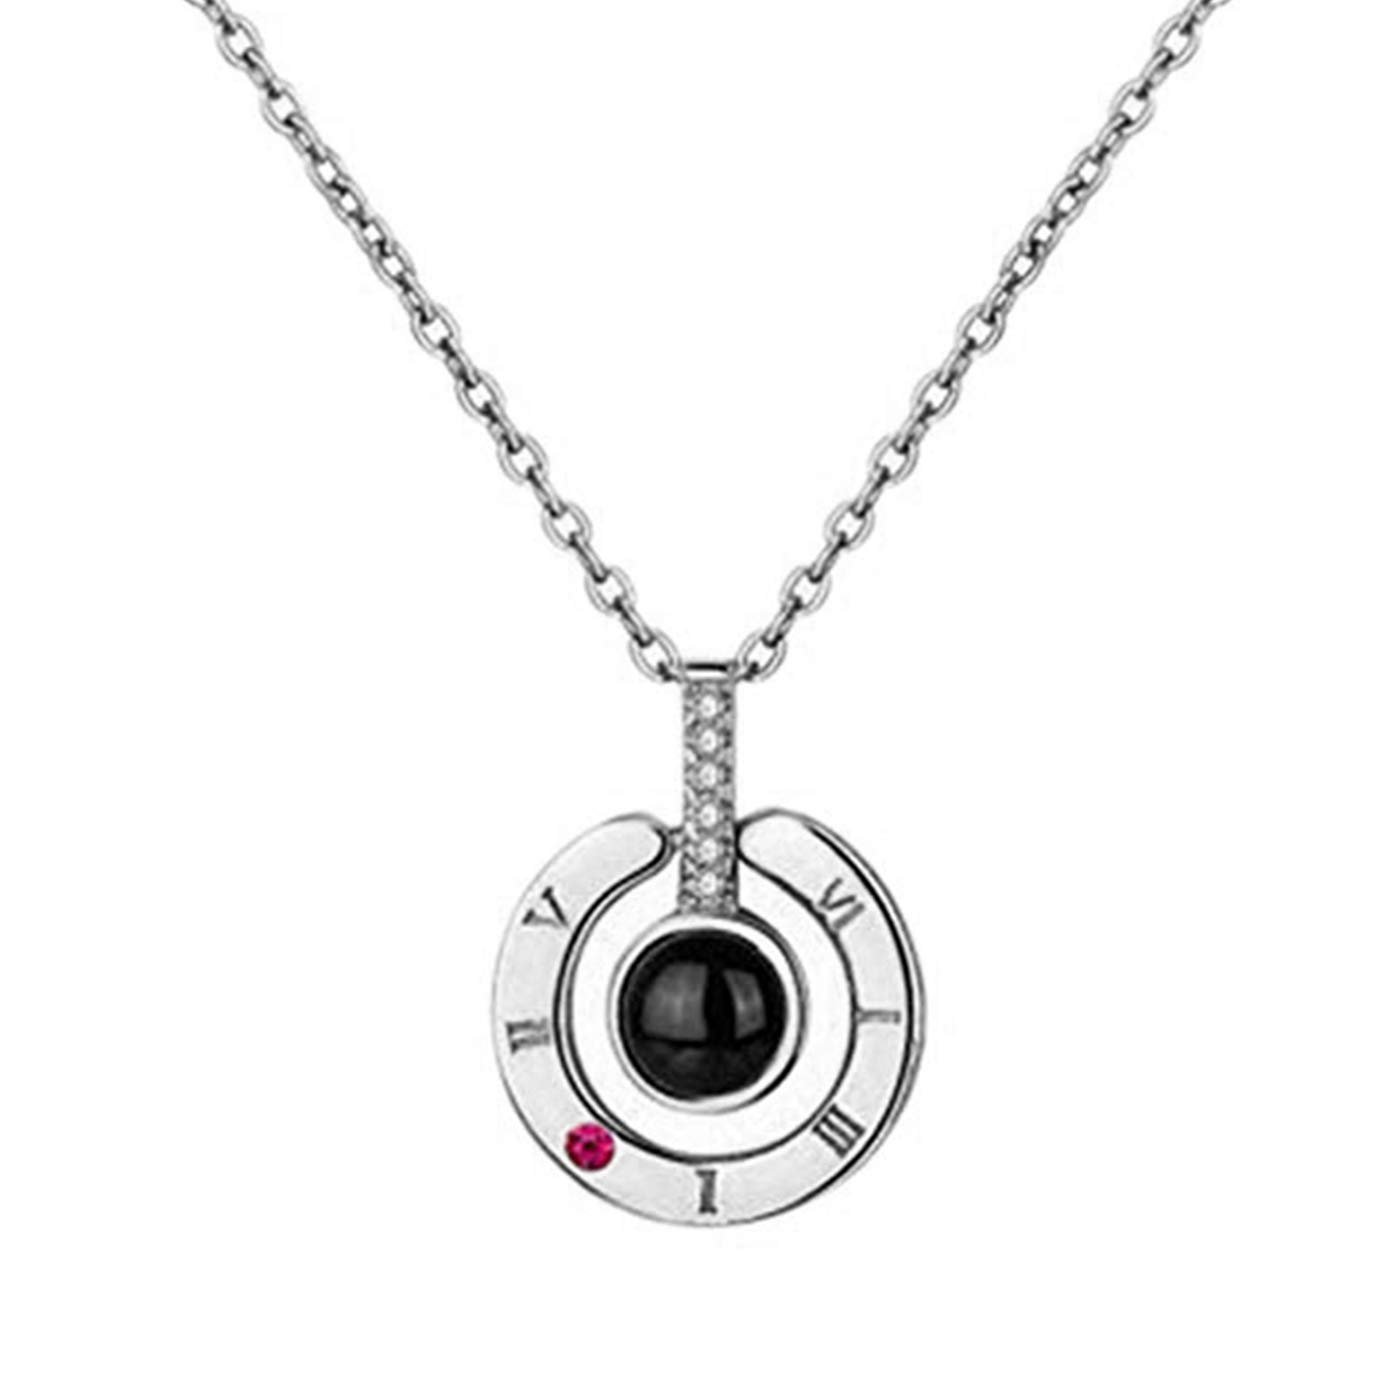 Womens Pendant Necklace, The Memory of Love Projective Necklace, 100 Different Languages for I Love You Nanometer Engraving Necklace Jewelry (Silver)